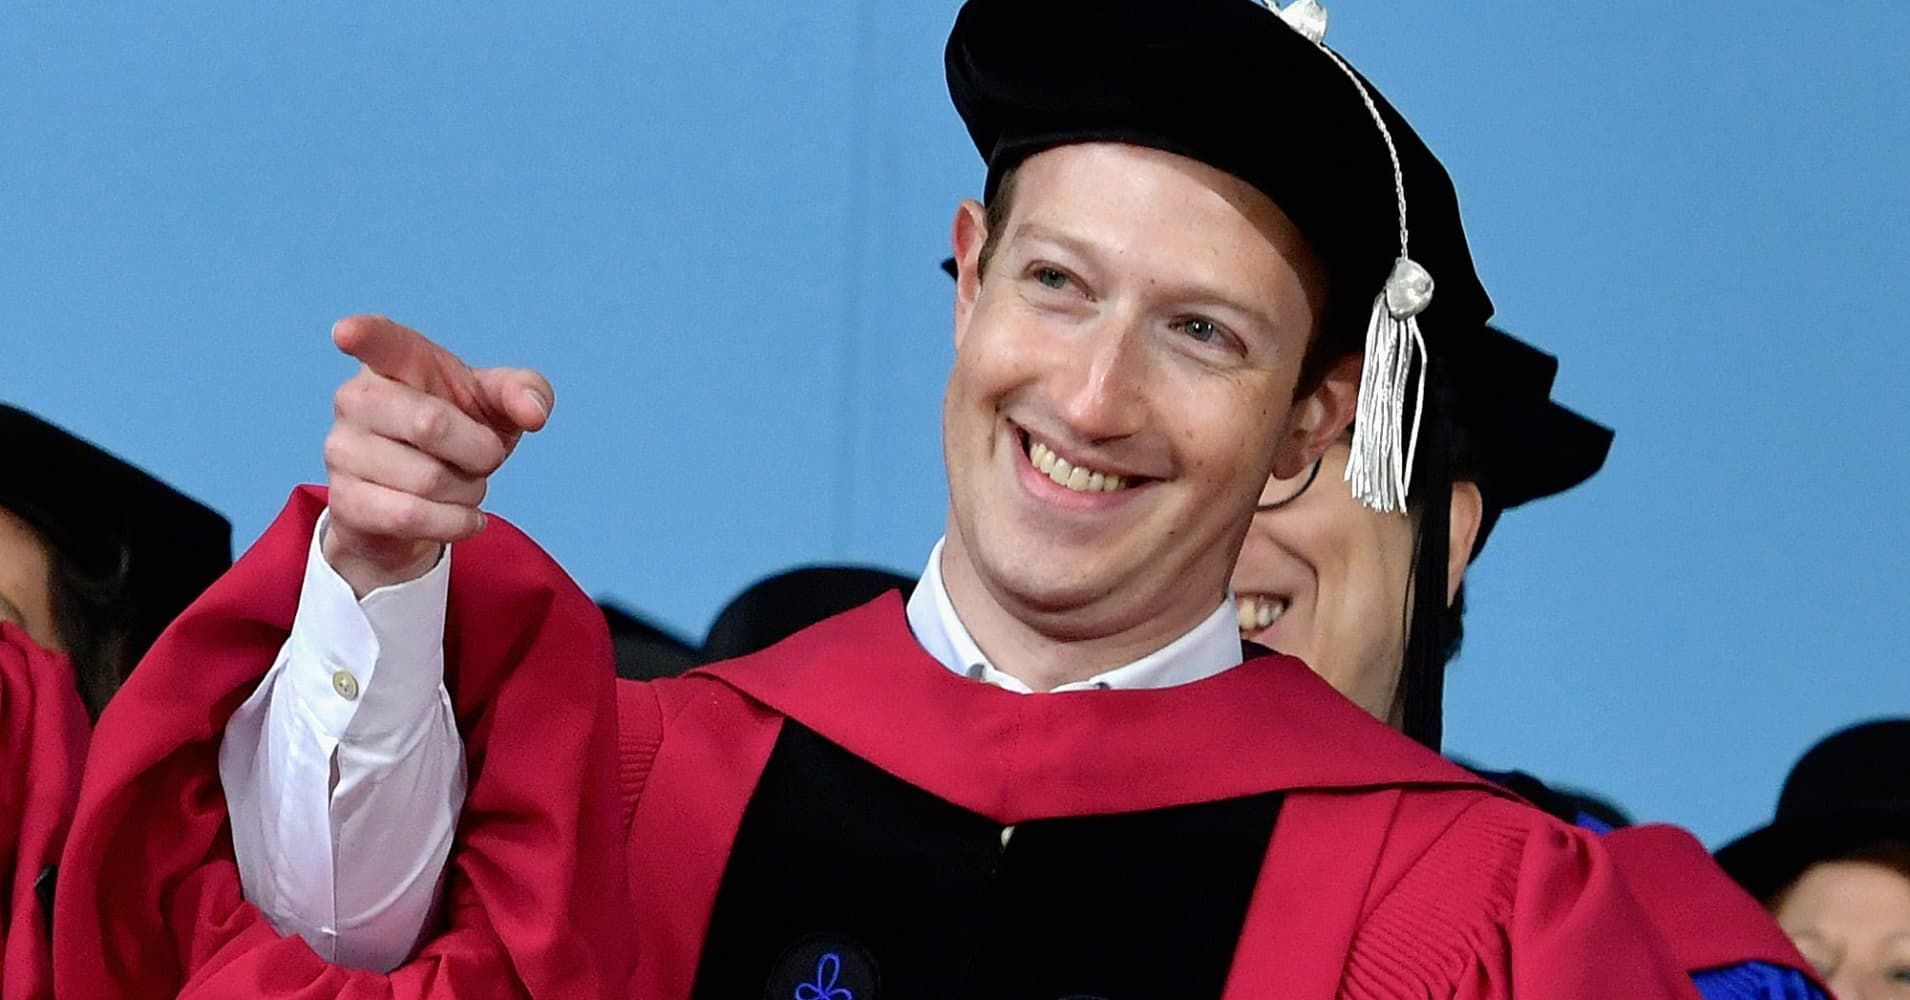 Mark Zuckerberg's dad said he could go to Harvard or have a McDonald's franchise